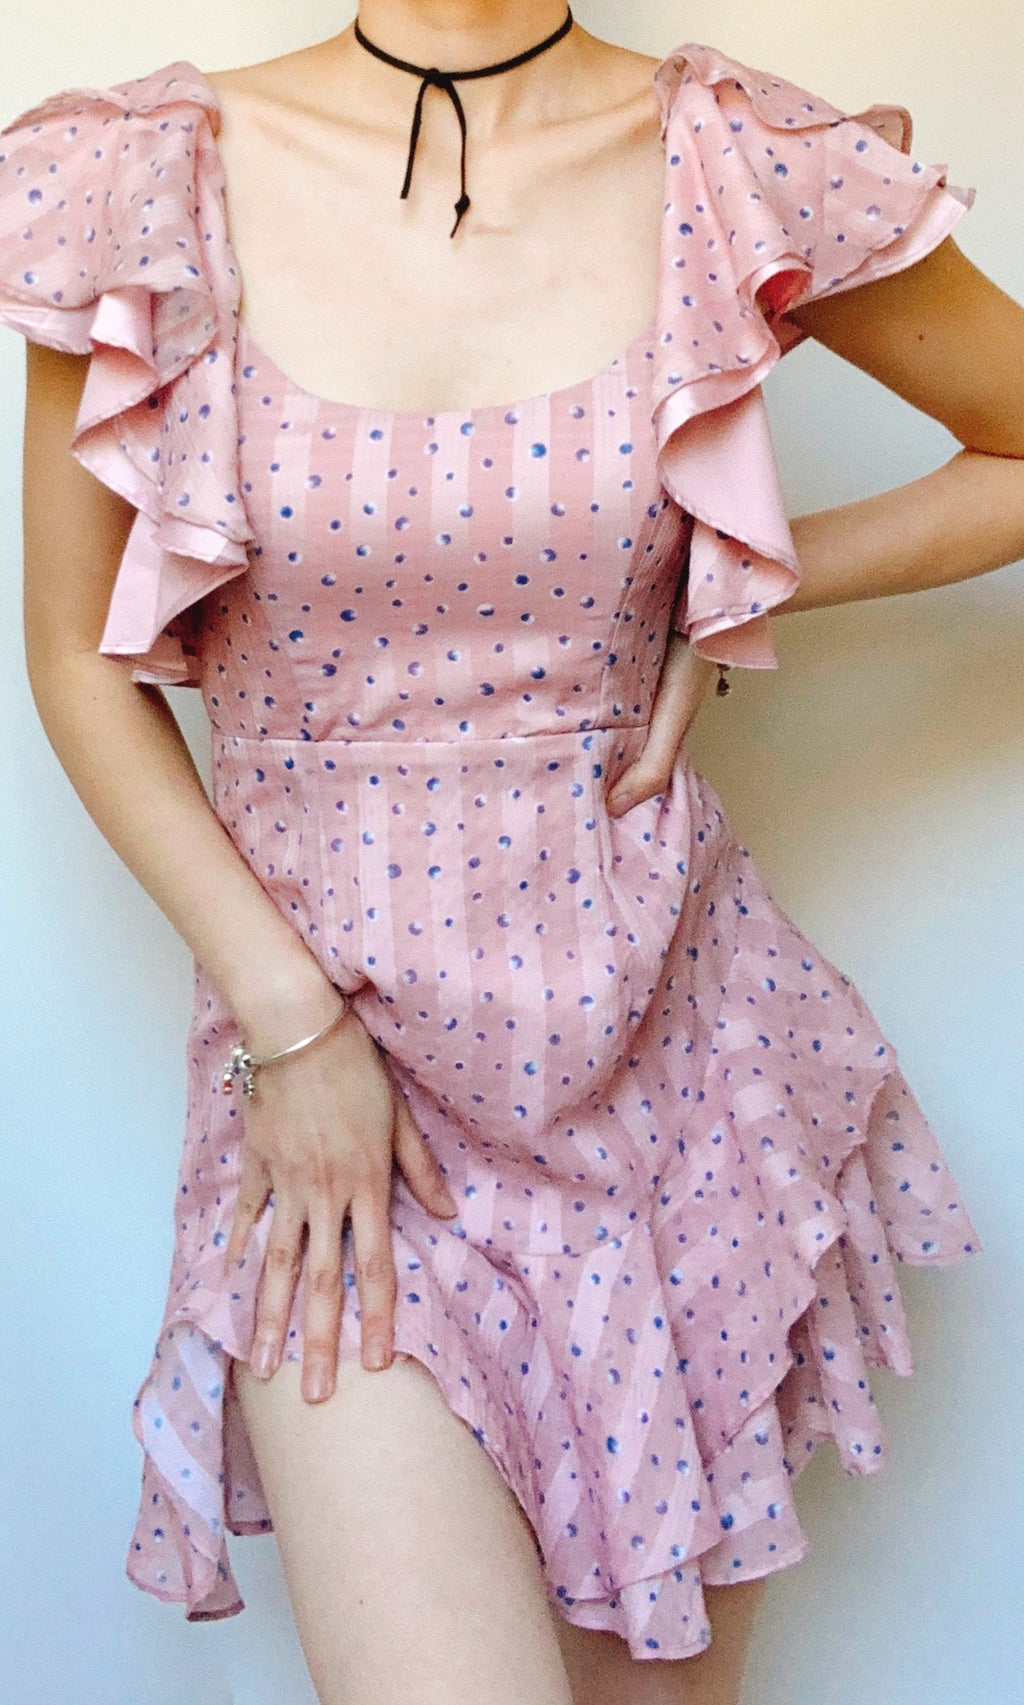 ADA MINI SHORT RUFFLE SLEEVE DRESS  IN PINK - DRESS - Koogal.com.au